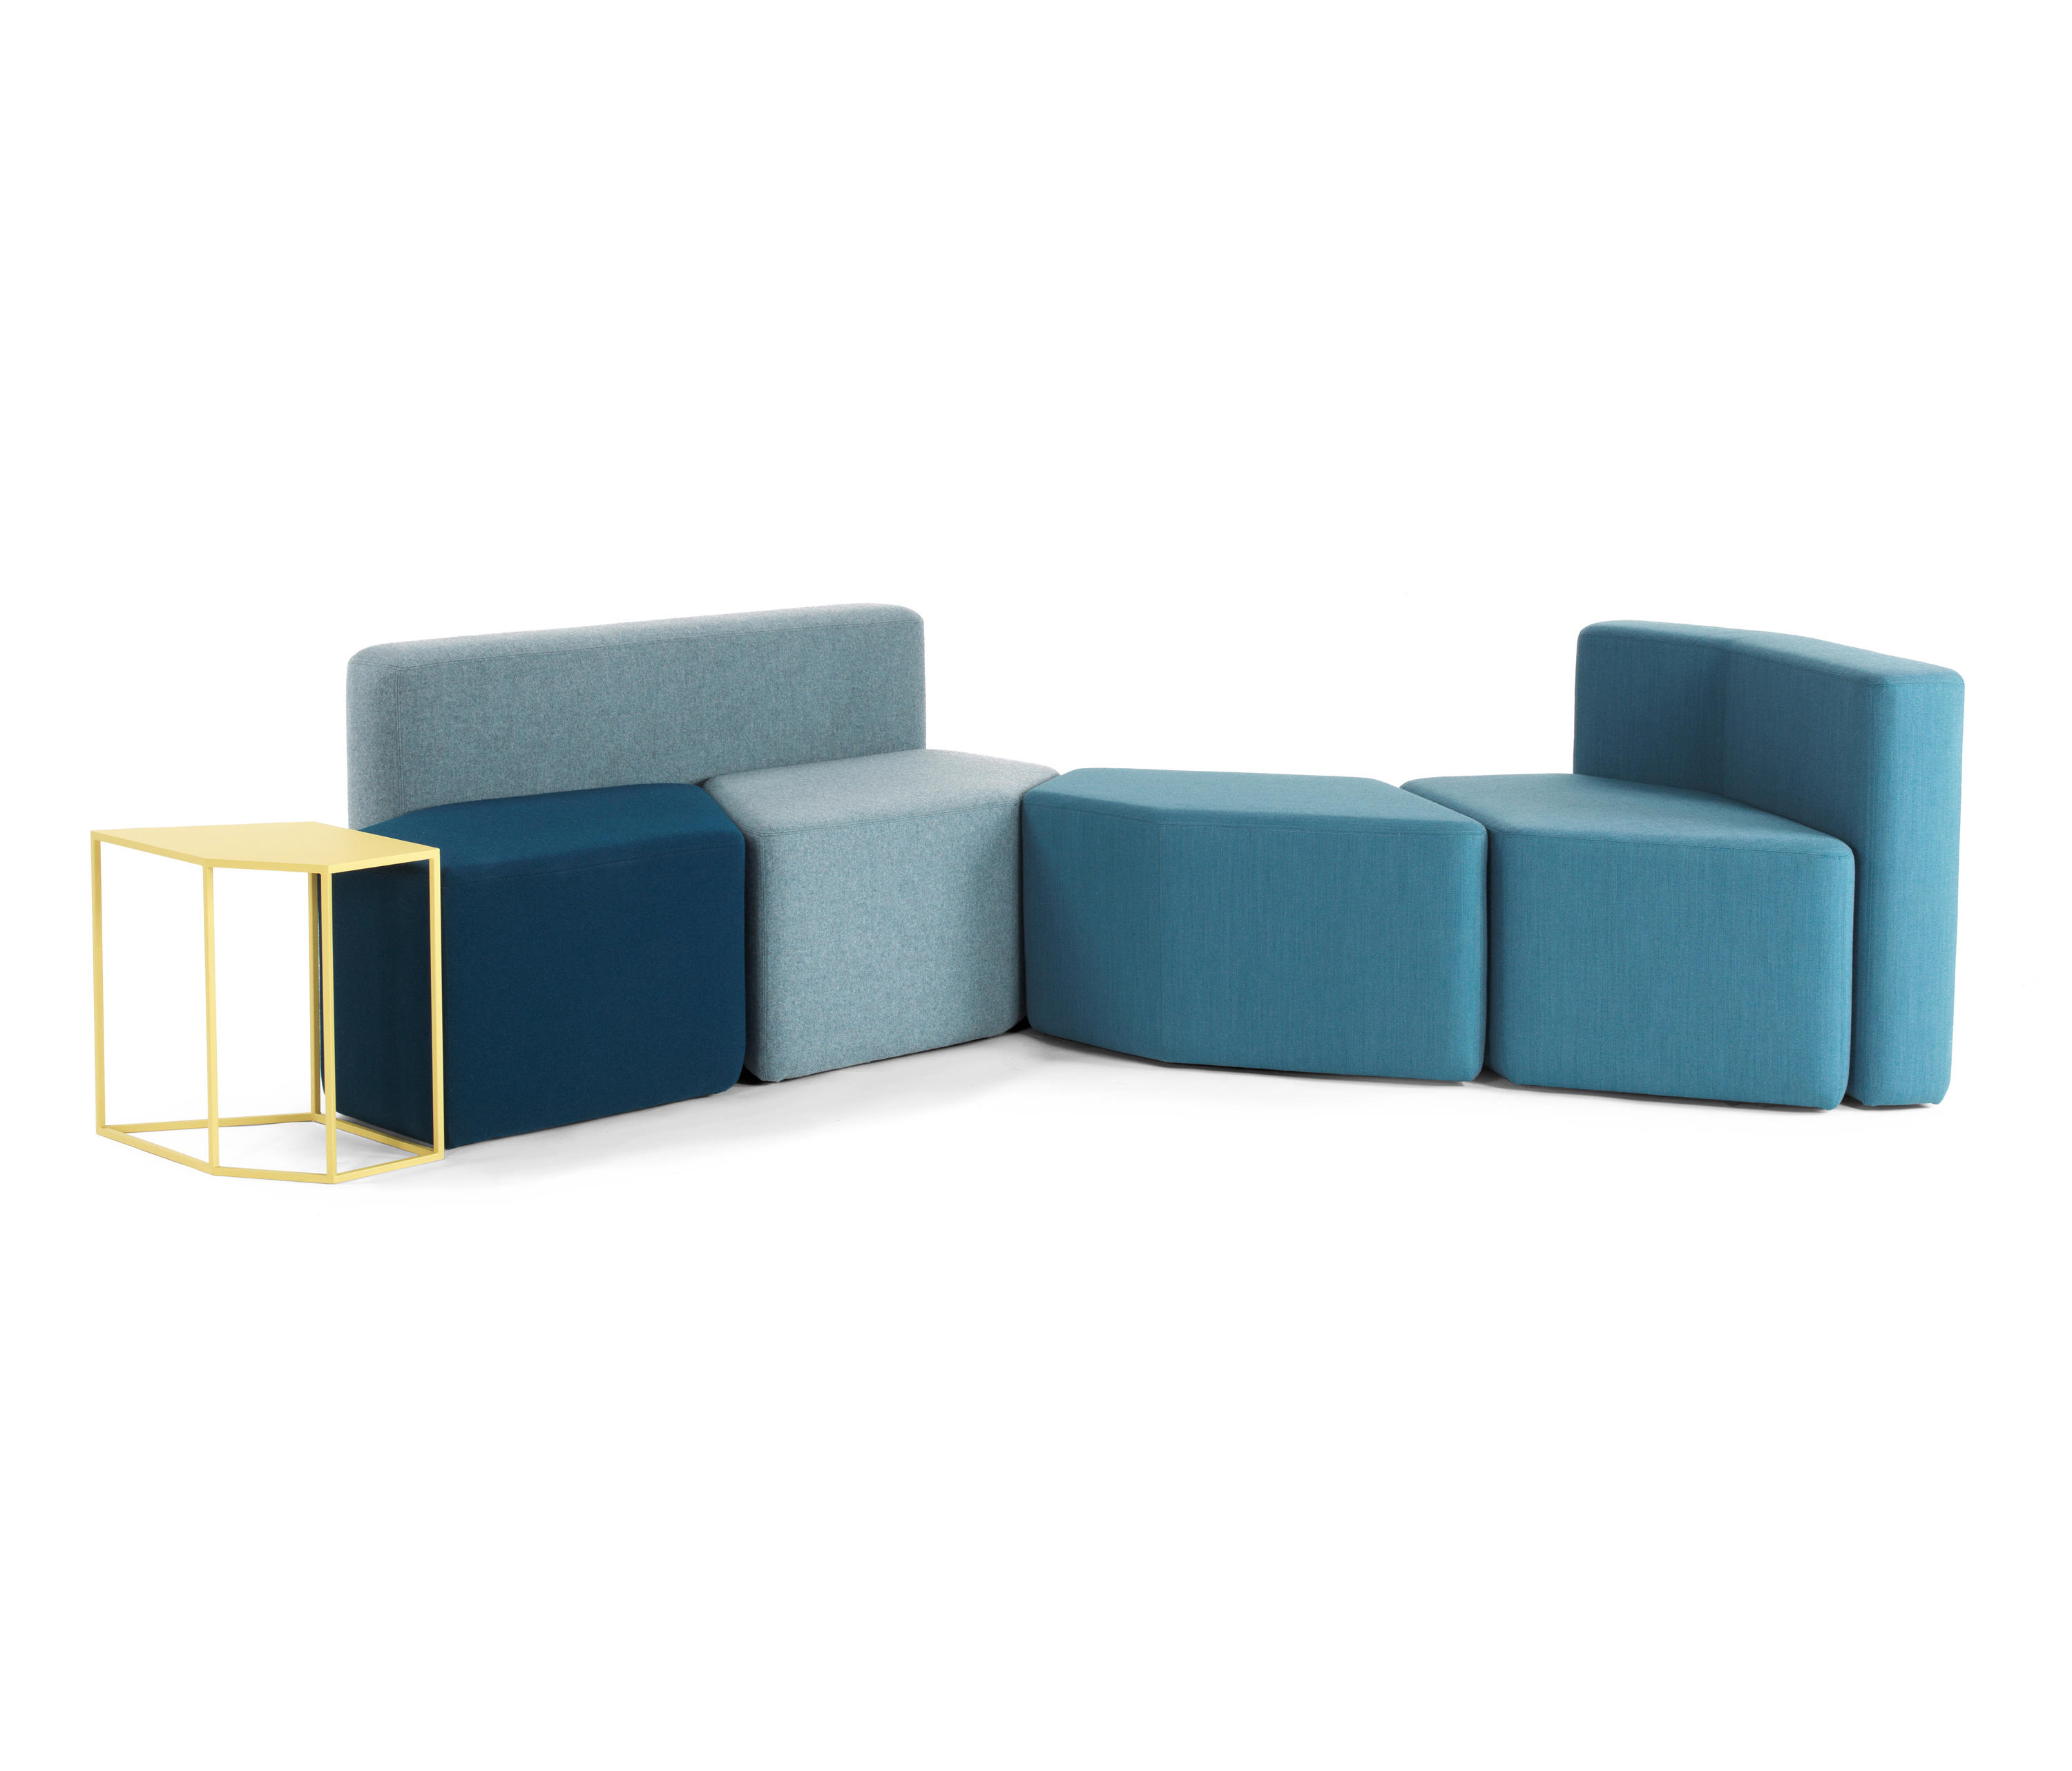 Potomac By Horreds | Modular Seating Systems